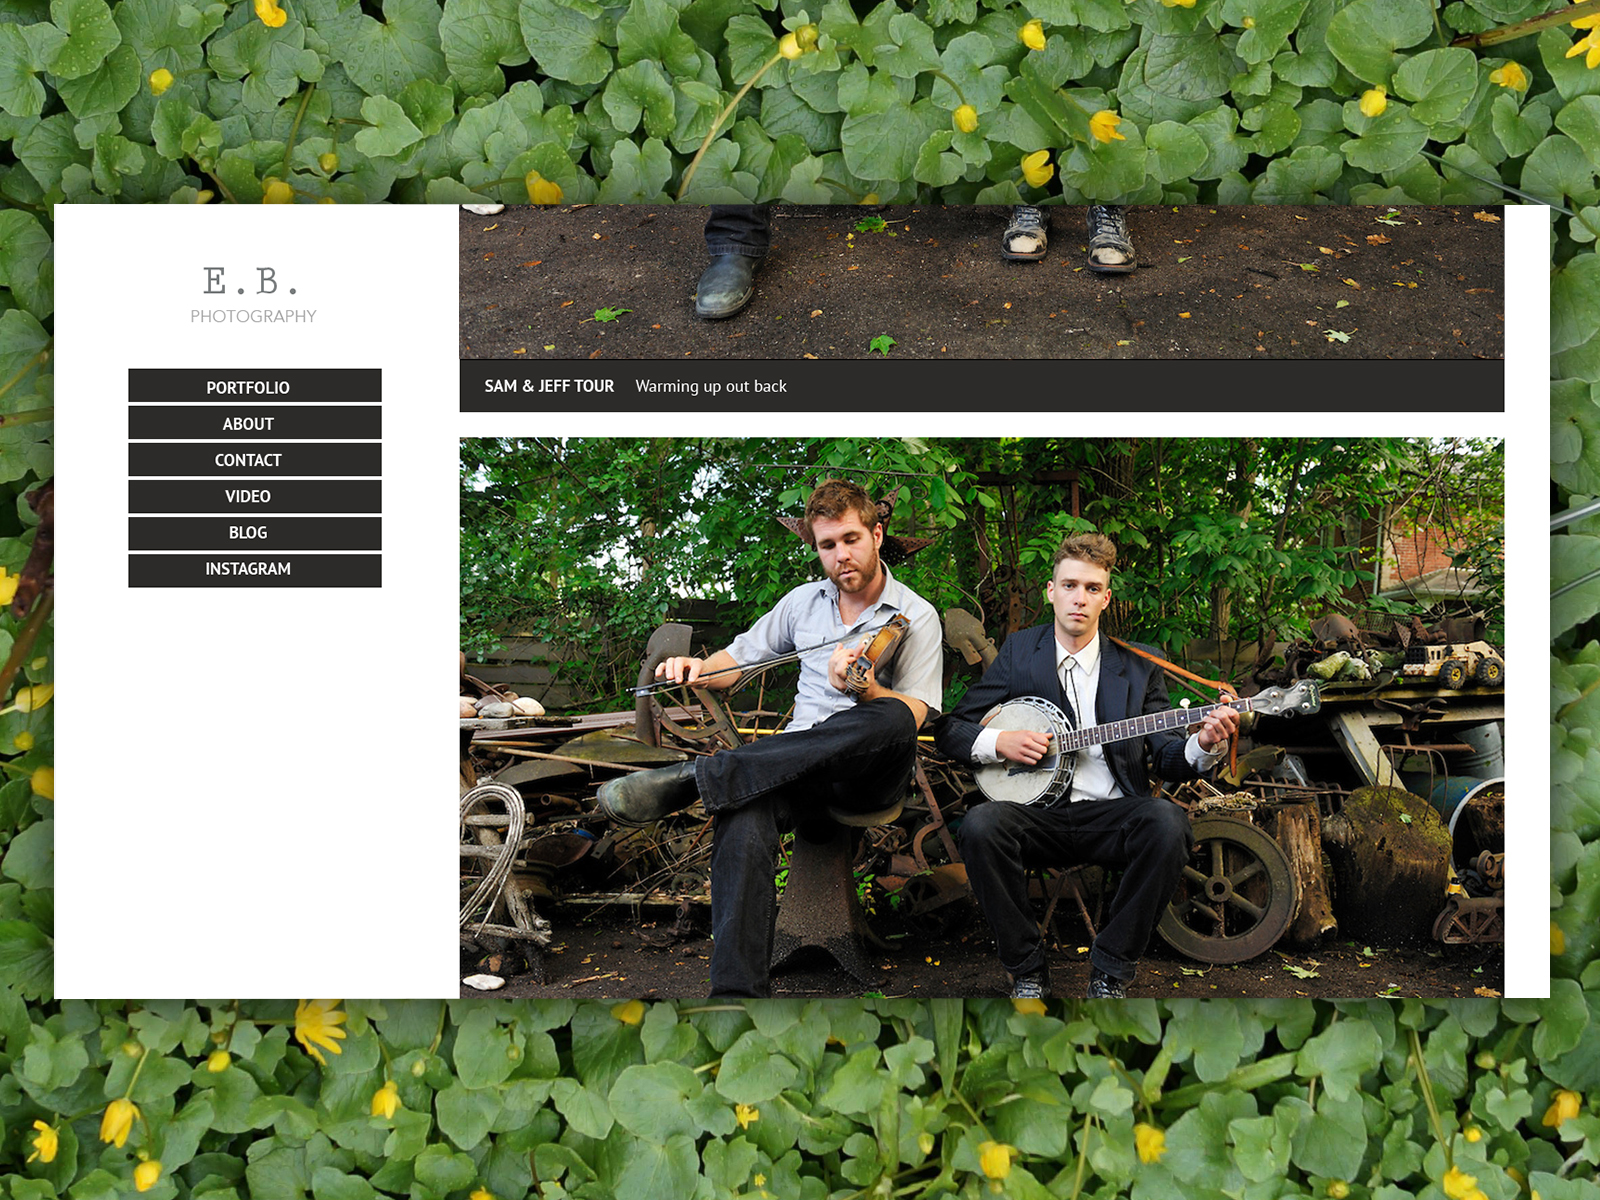 Photography portfolio with a left navigation and a collection of images in the center-right area. The portfolio image shows two musicians, one fiddler and another banjo player, playing outside, surrounded by junk. The entire portfolio is superimposed on a bed of plants.